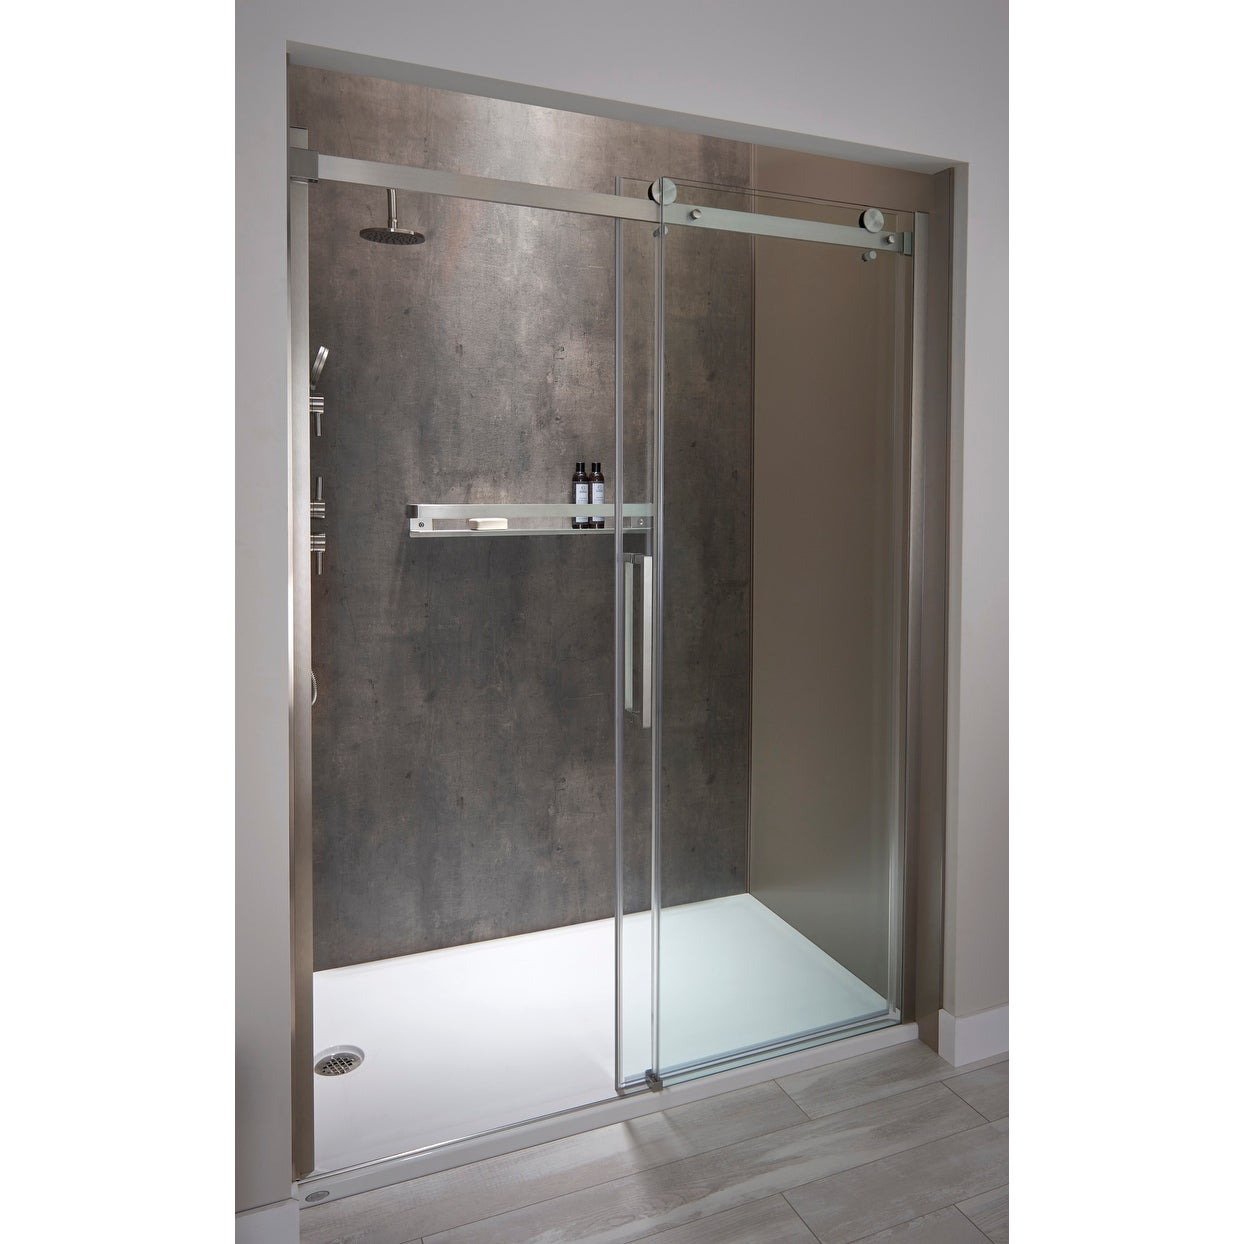 Jacuzzi Sx48 79 High X 48 Wide Sliding Semi Frameless Shower Door With Clear Glass